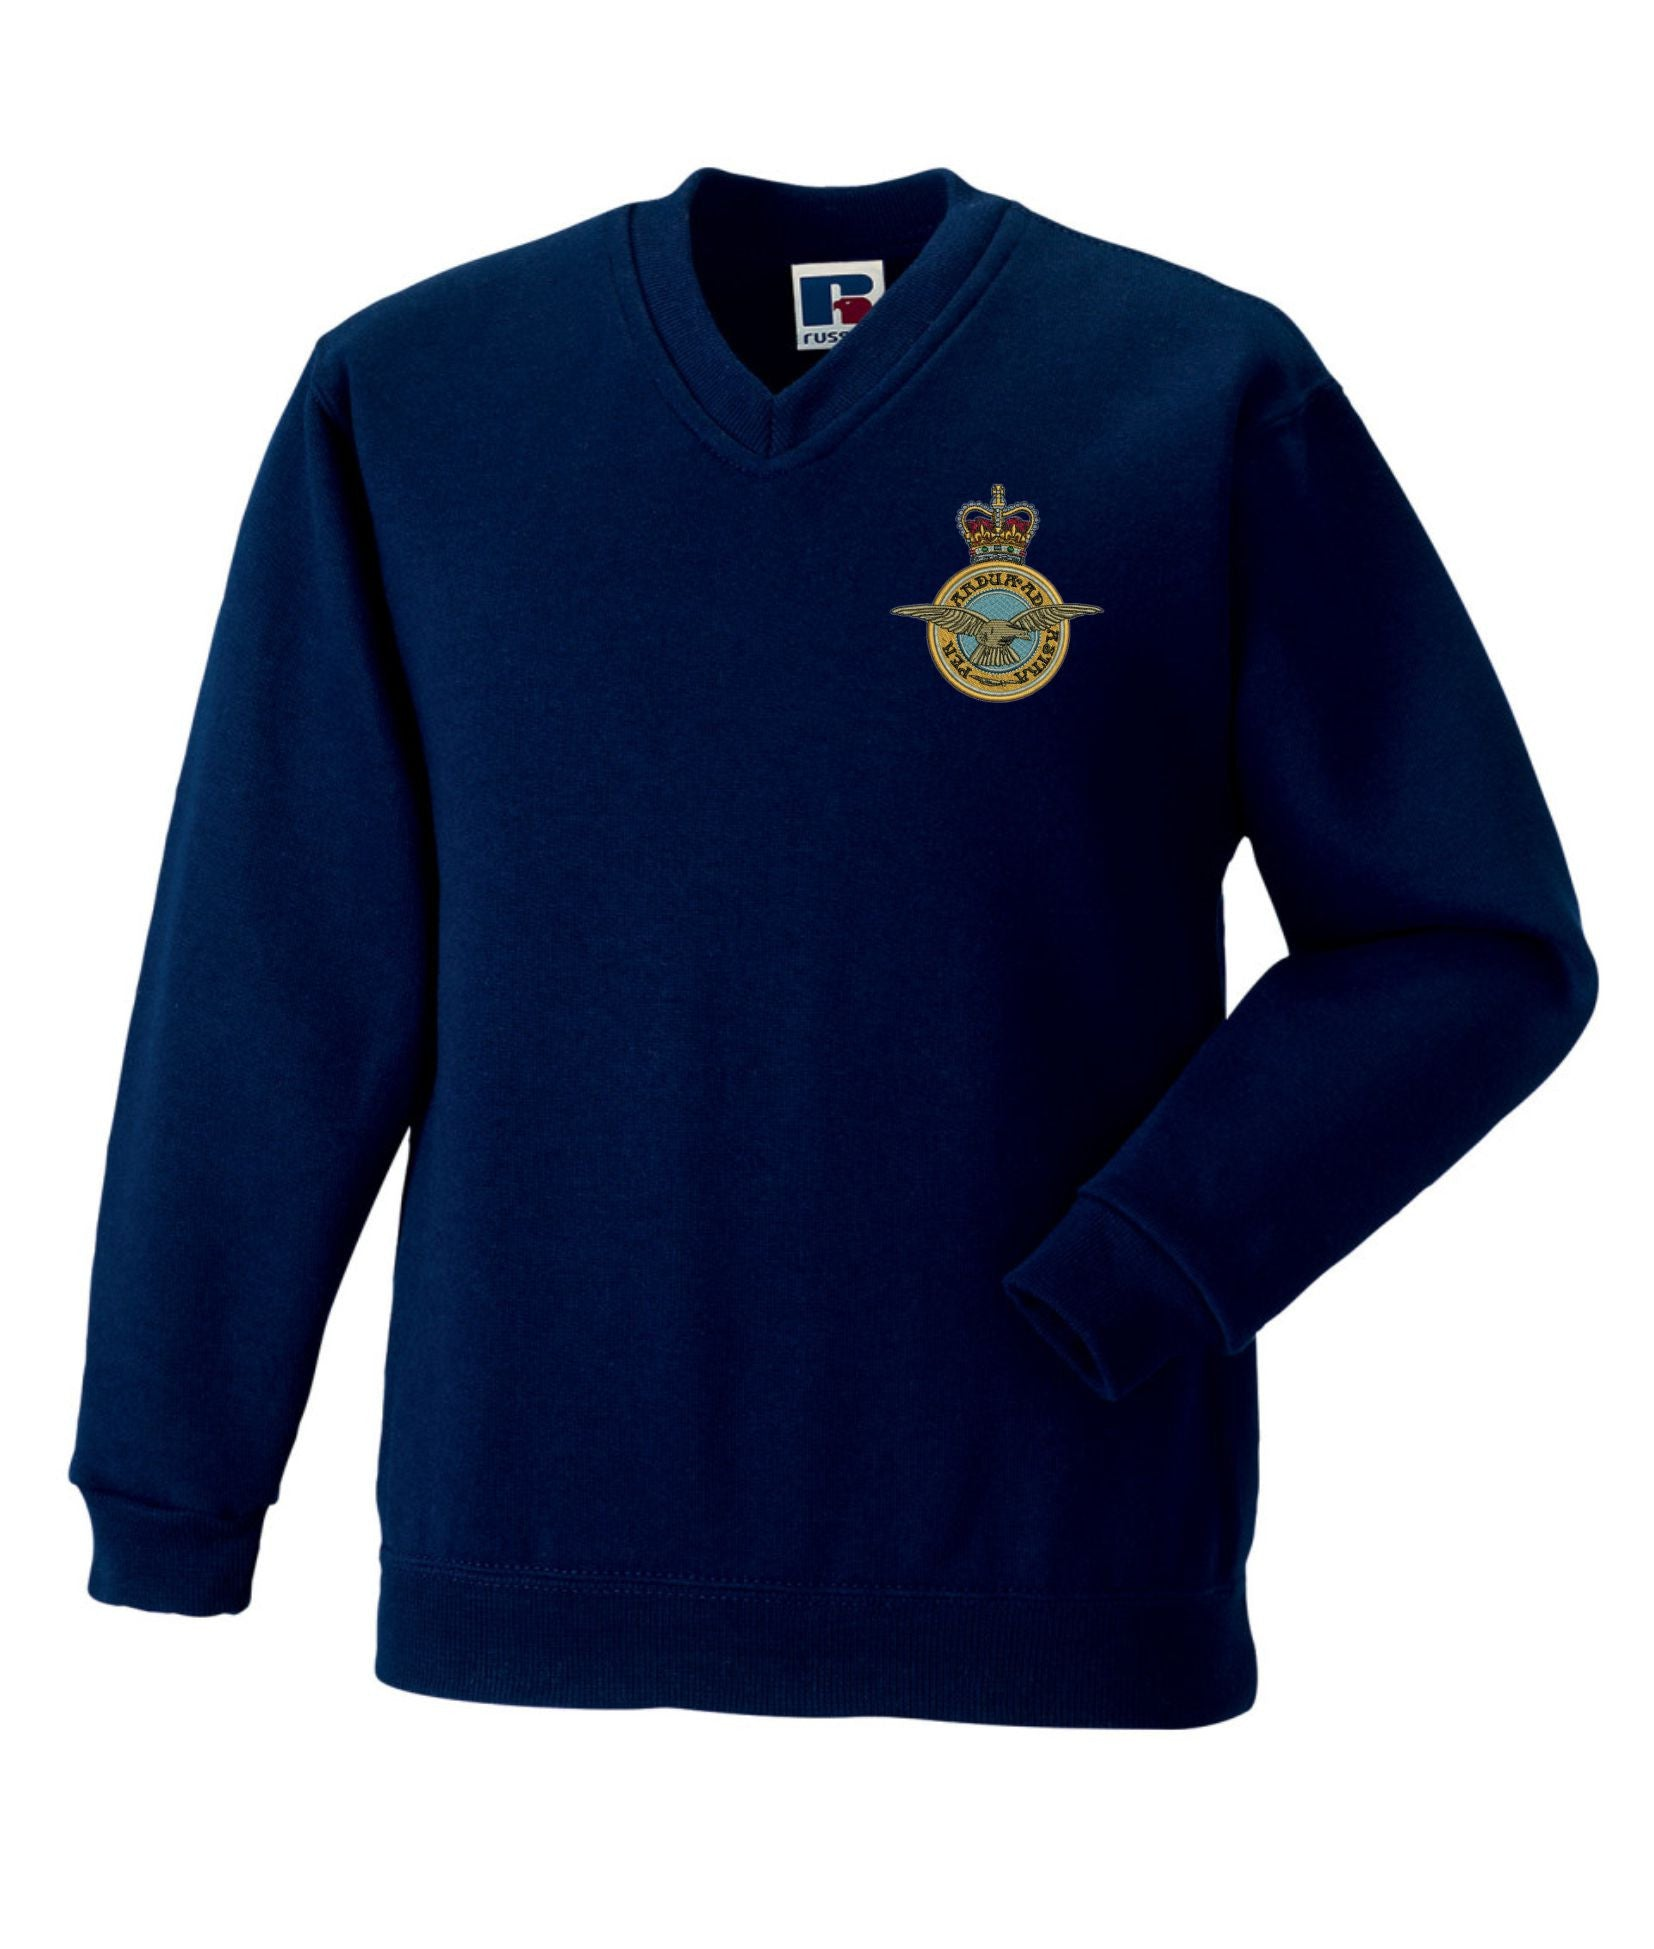 Royal Air Force V Neck Sweatshirt